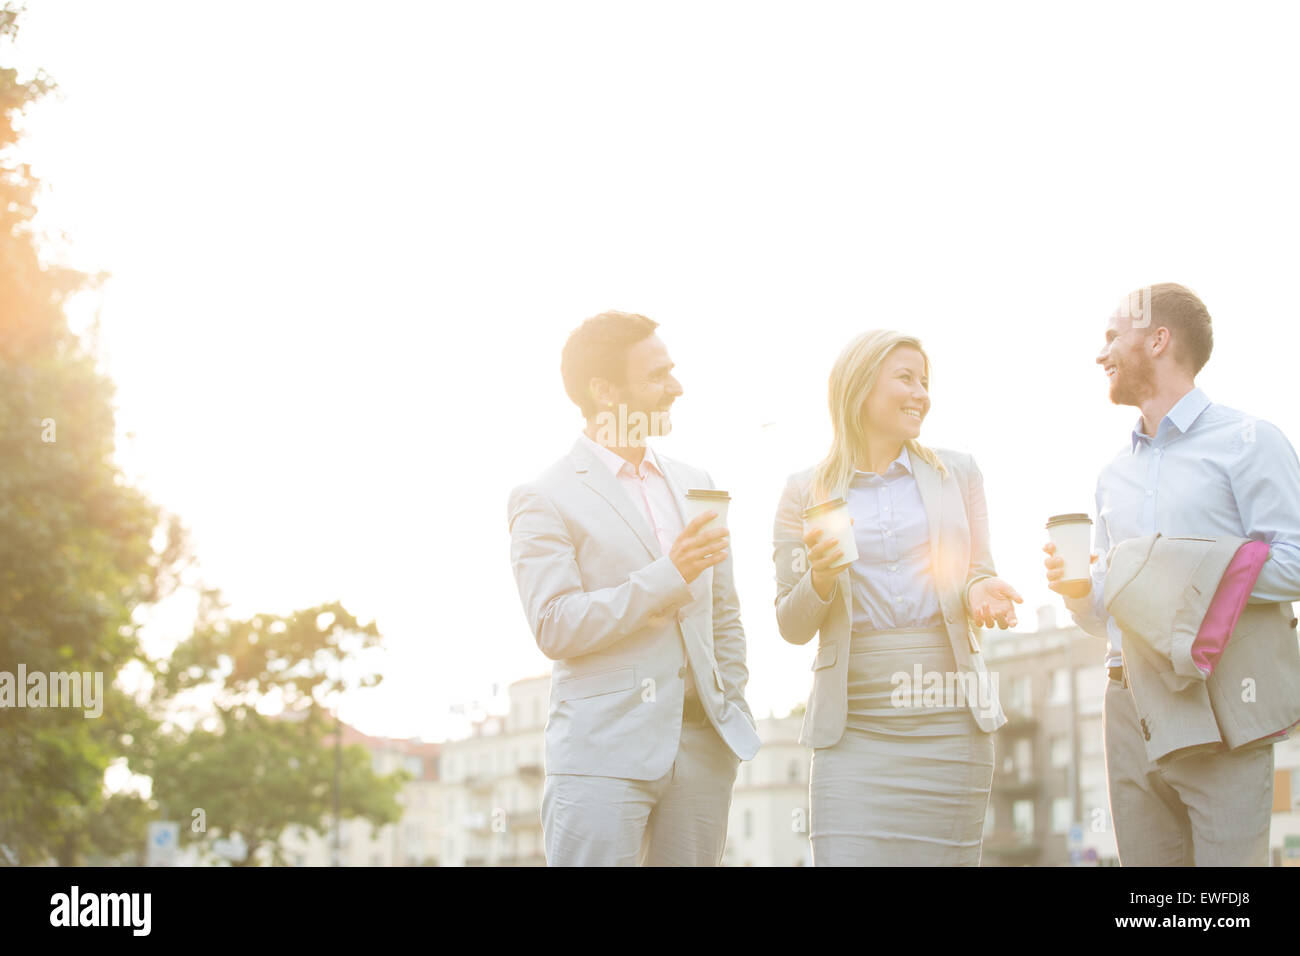 Happy businesspeople with disposable cups talking against clear sky on sunny day - Stock Image